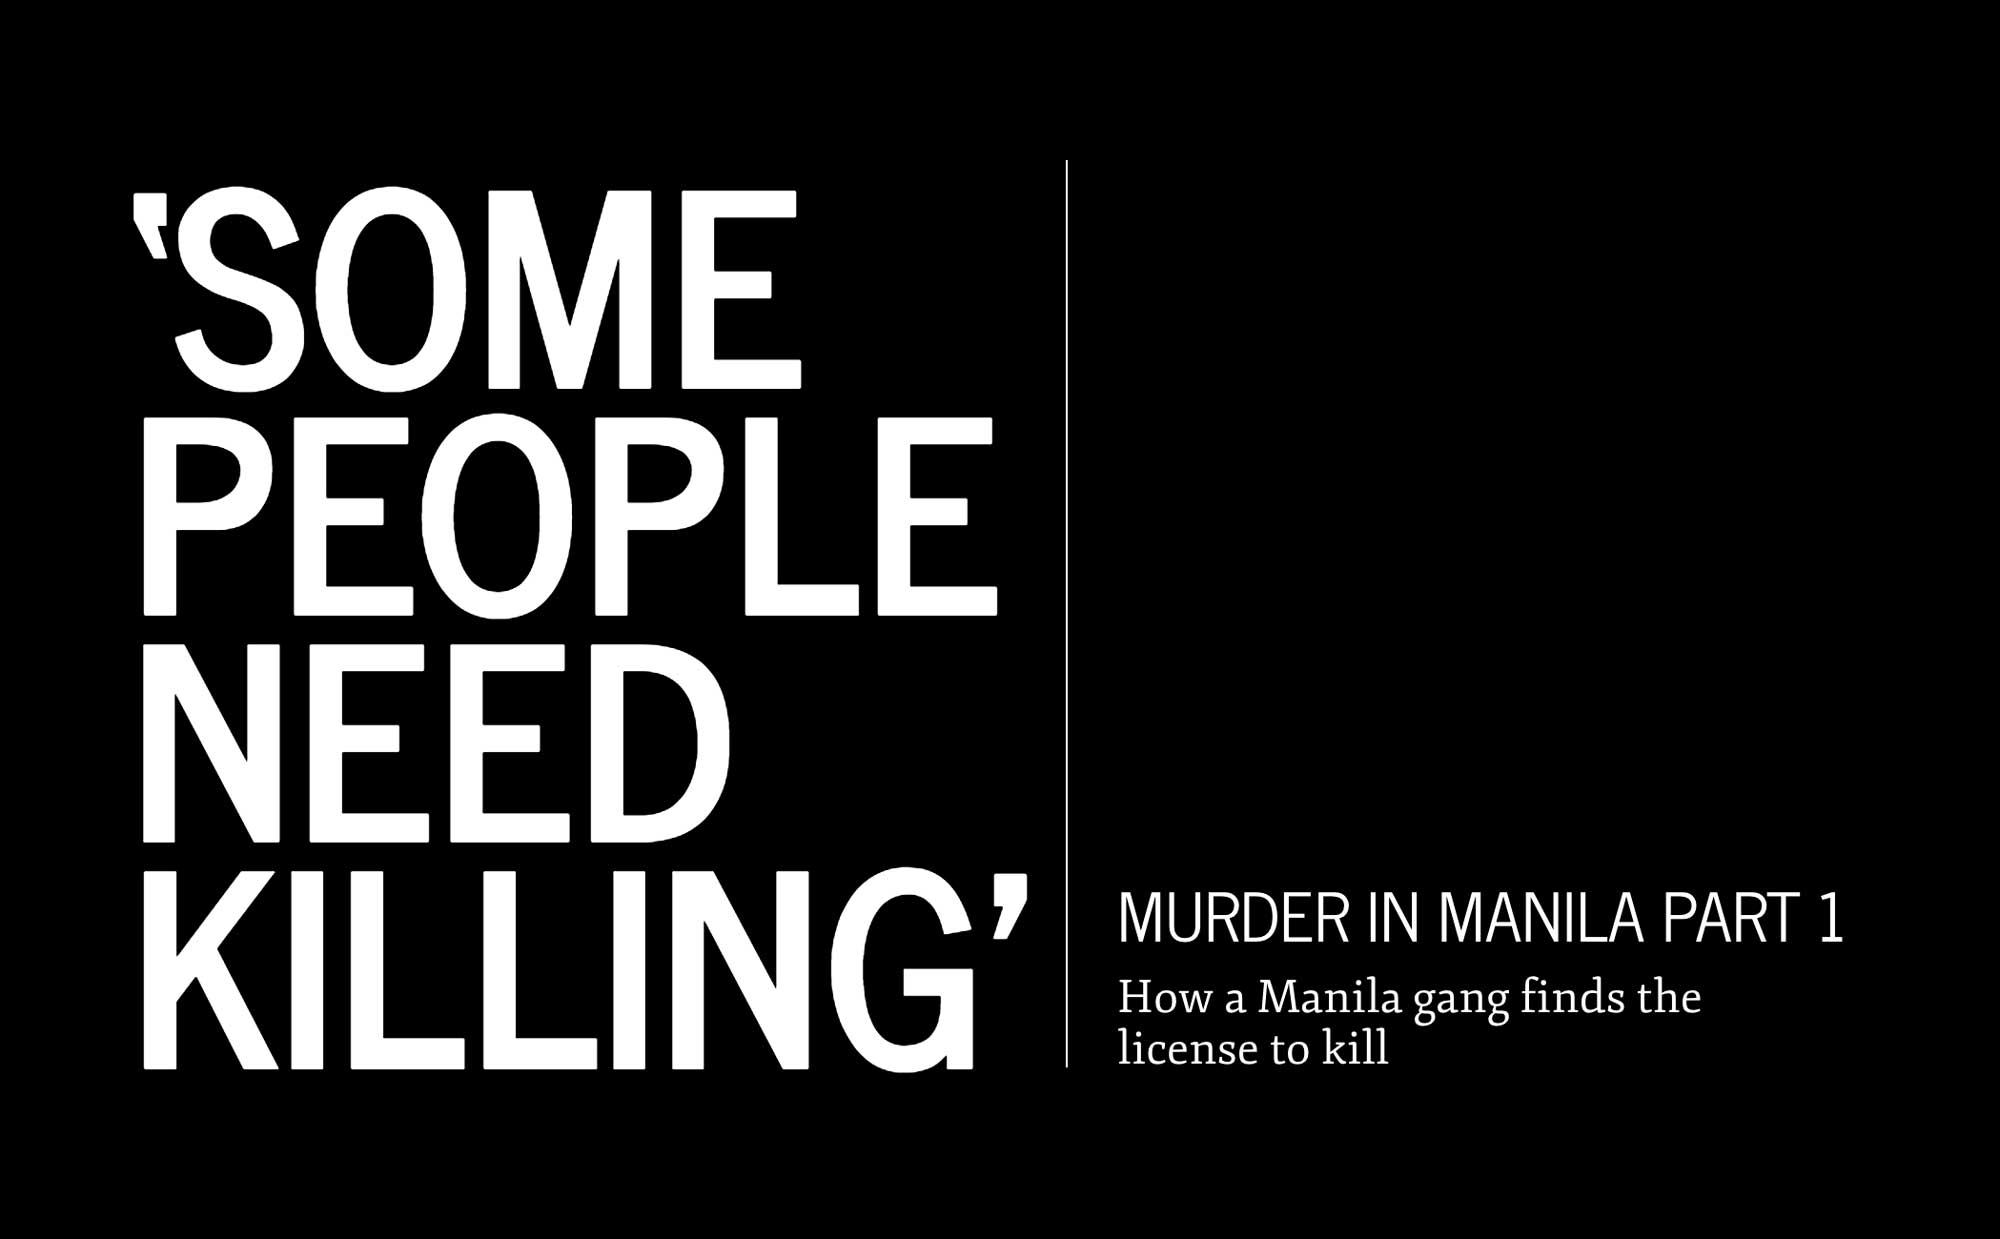 Some people need killing | Murder In Manila Part 1